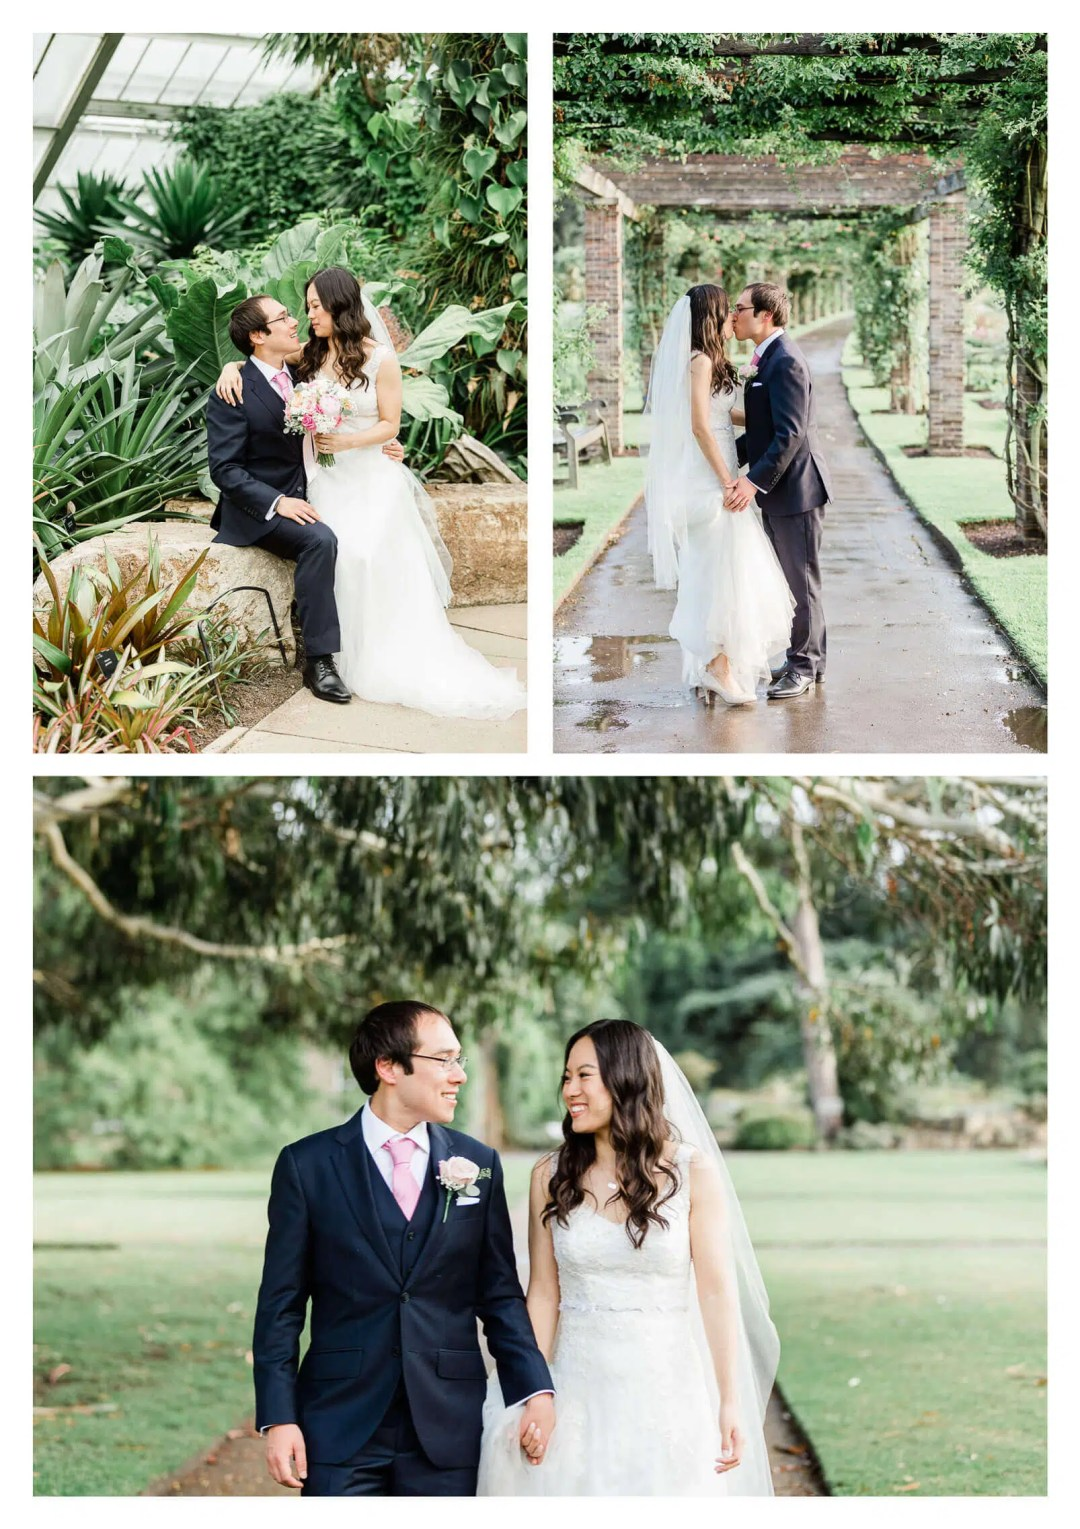 Kew Gardens wedding couple portraits | London photographer